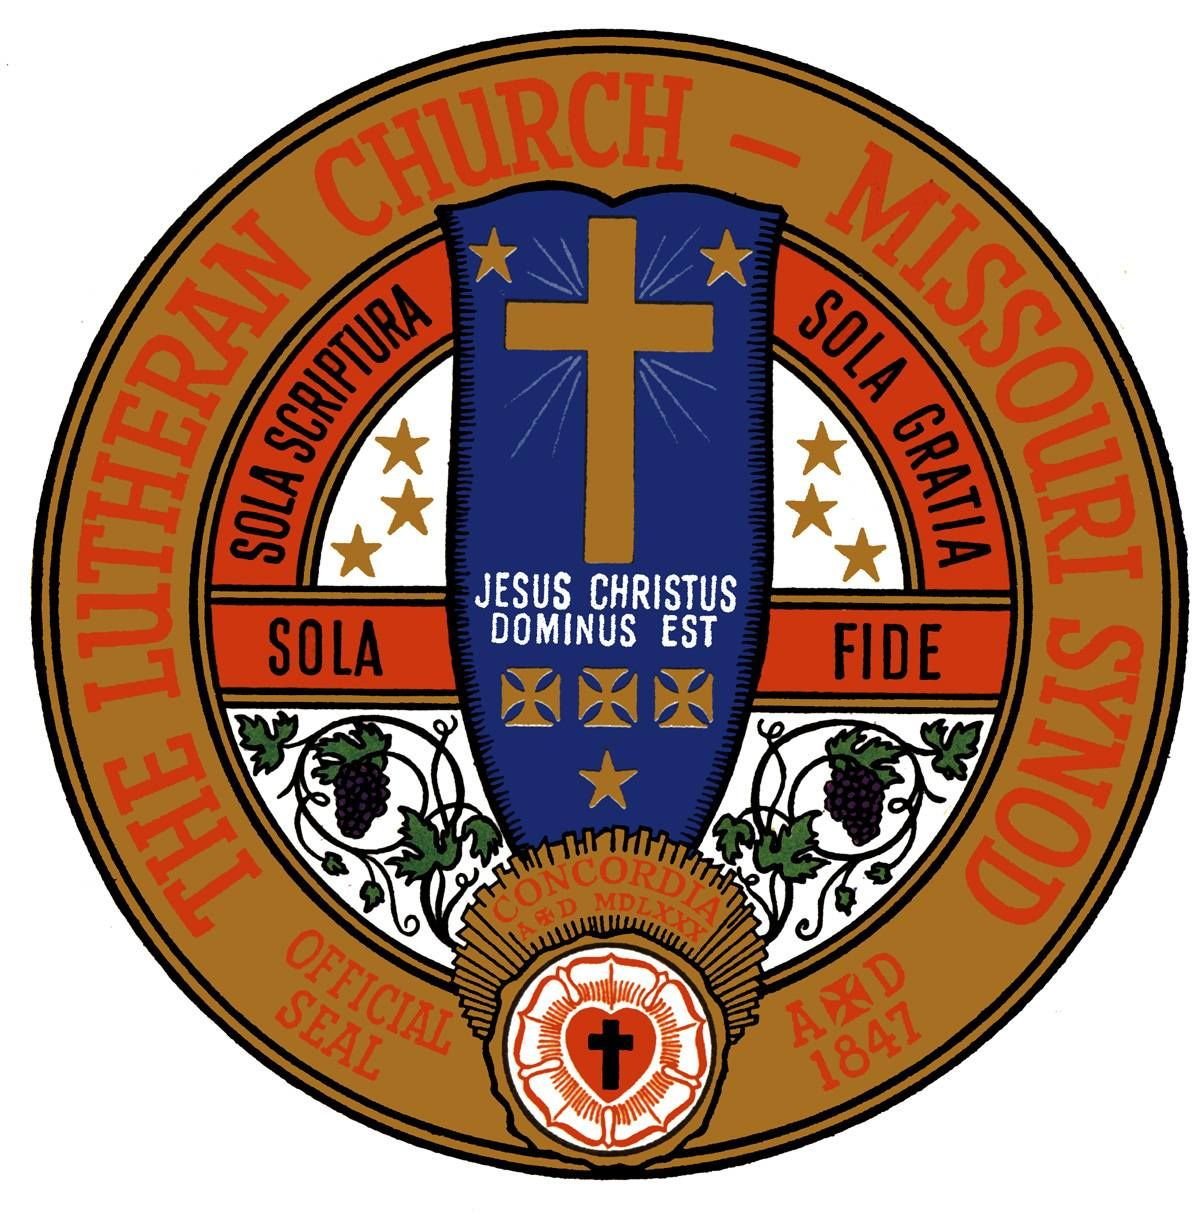 The lutheran church missouri synod living in utah i have a good the lutheran church missouri synod living in utah i have a good alternative reason buycottarizona Image collections